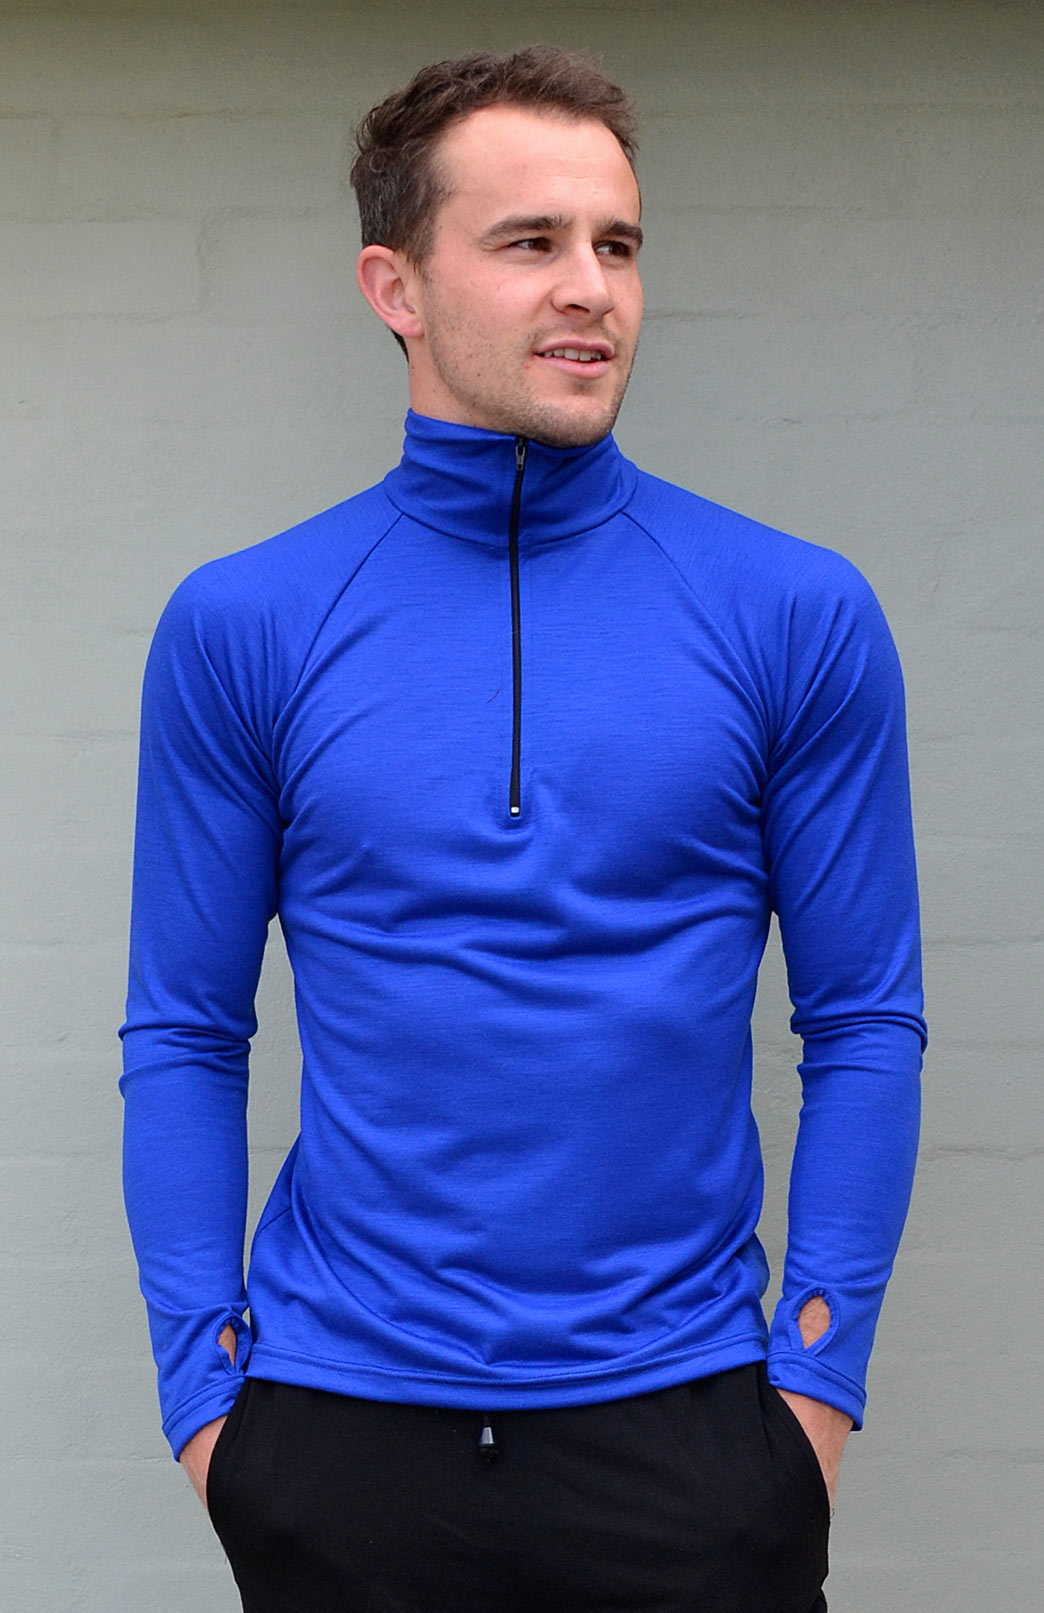 Men's Zip Neck Top - 170g - Men's Lightweight Merino Wool Long Sleeve Zip Neck Top - Smitten Merino Tasmania Australia